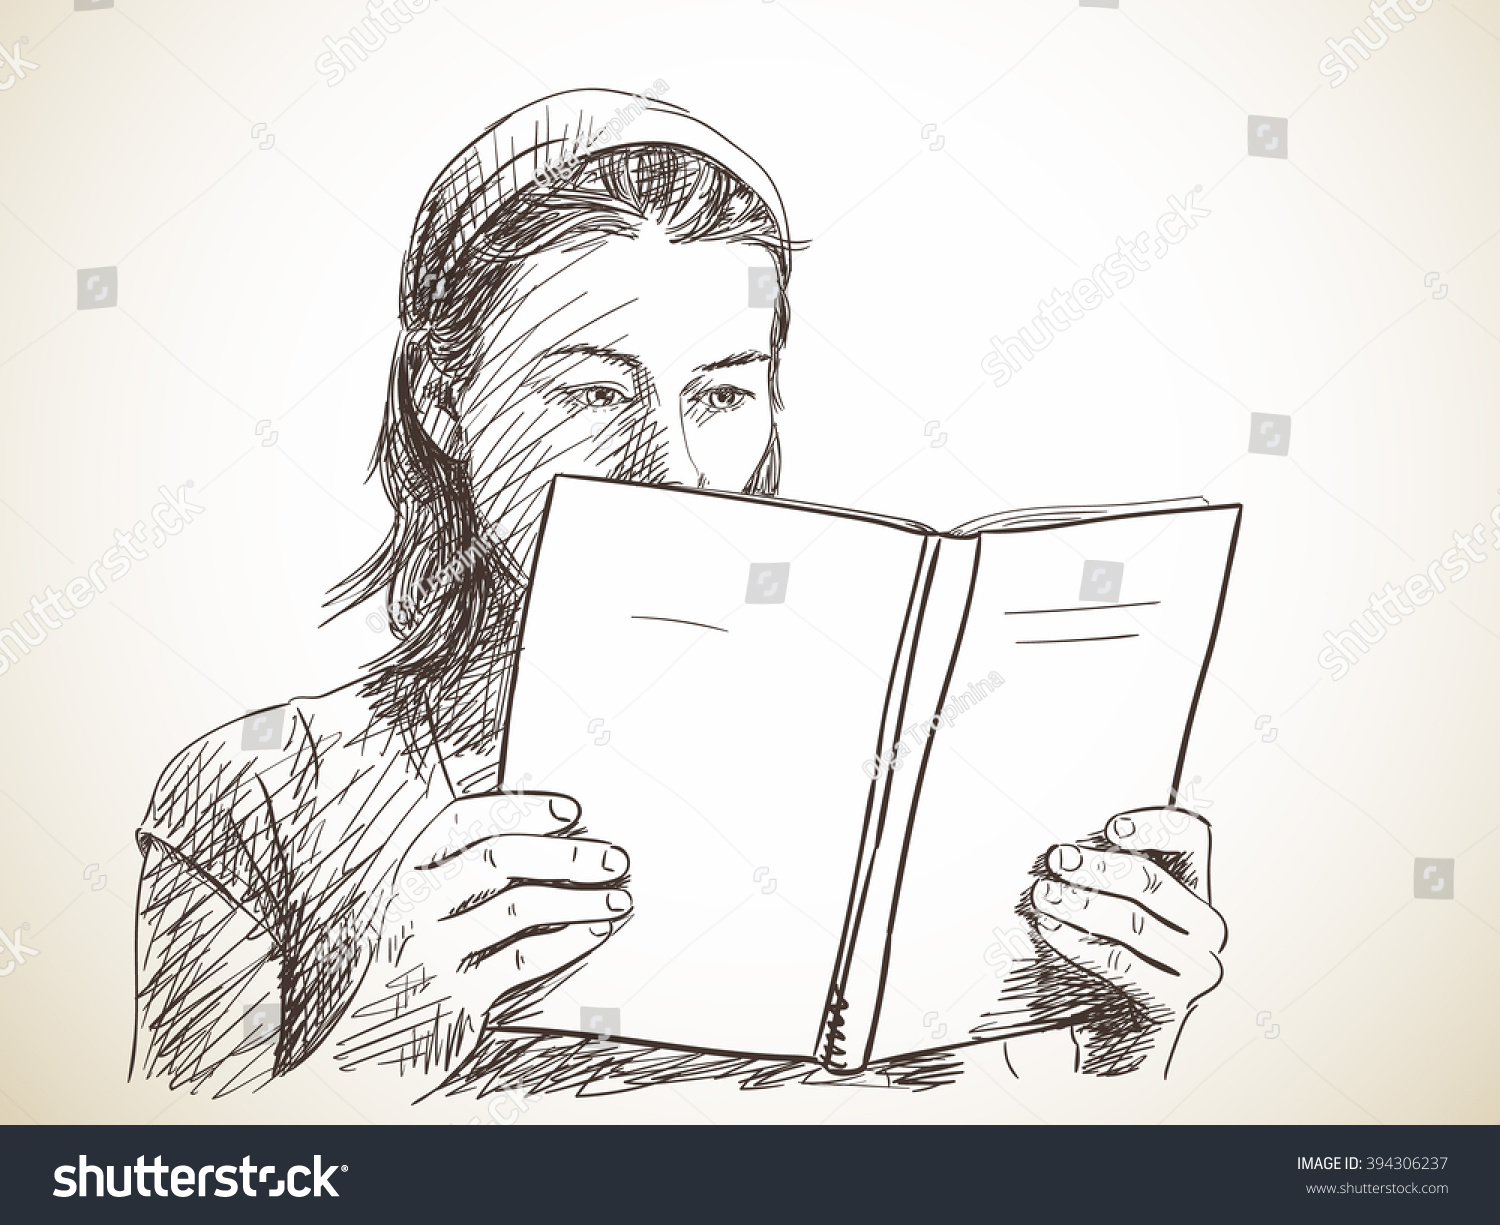 Sketch of woman reading book hand drawn illustration